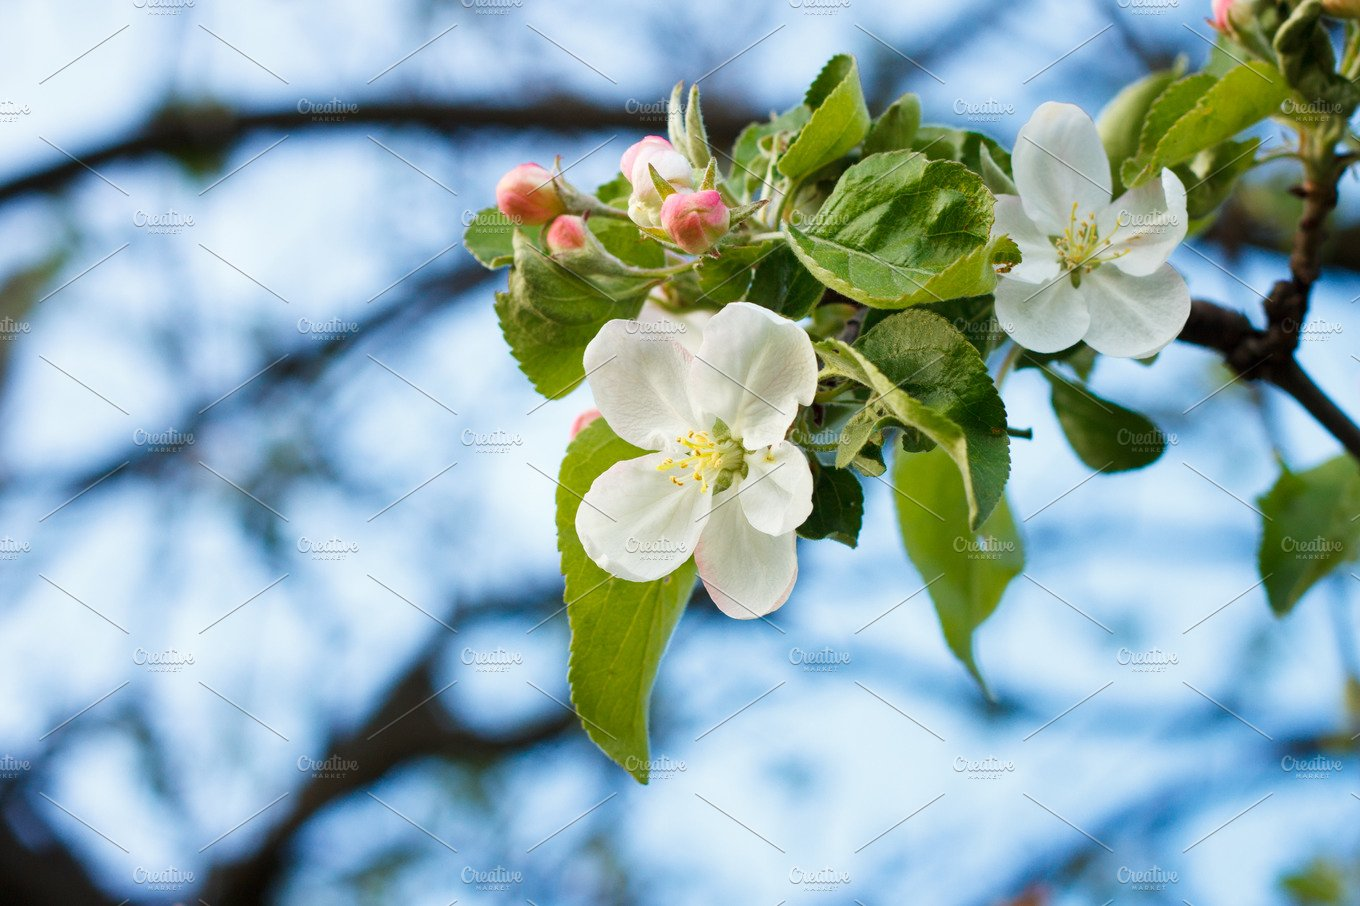 Blossoming Apple Tree Twig With White Flowers Nature Photos